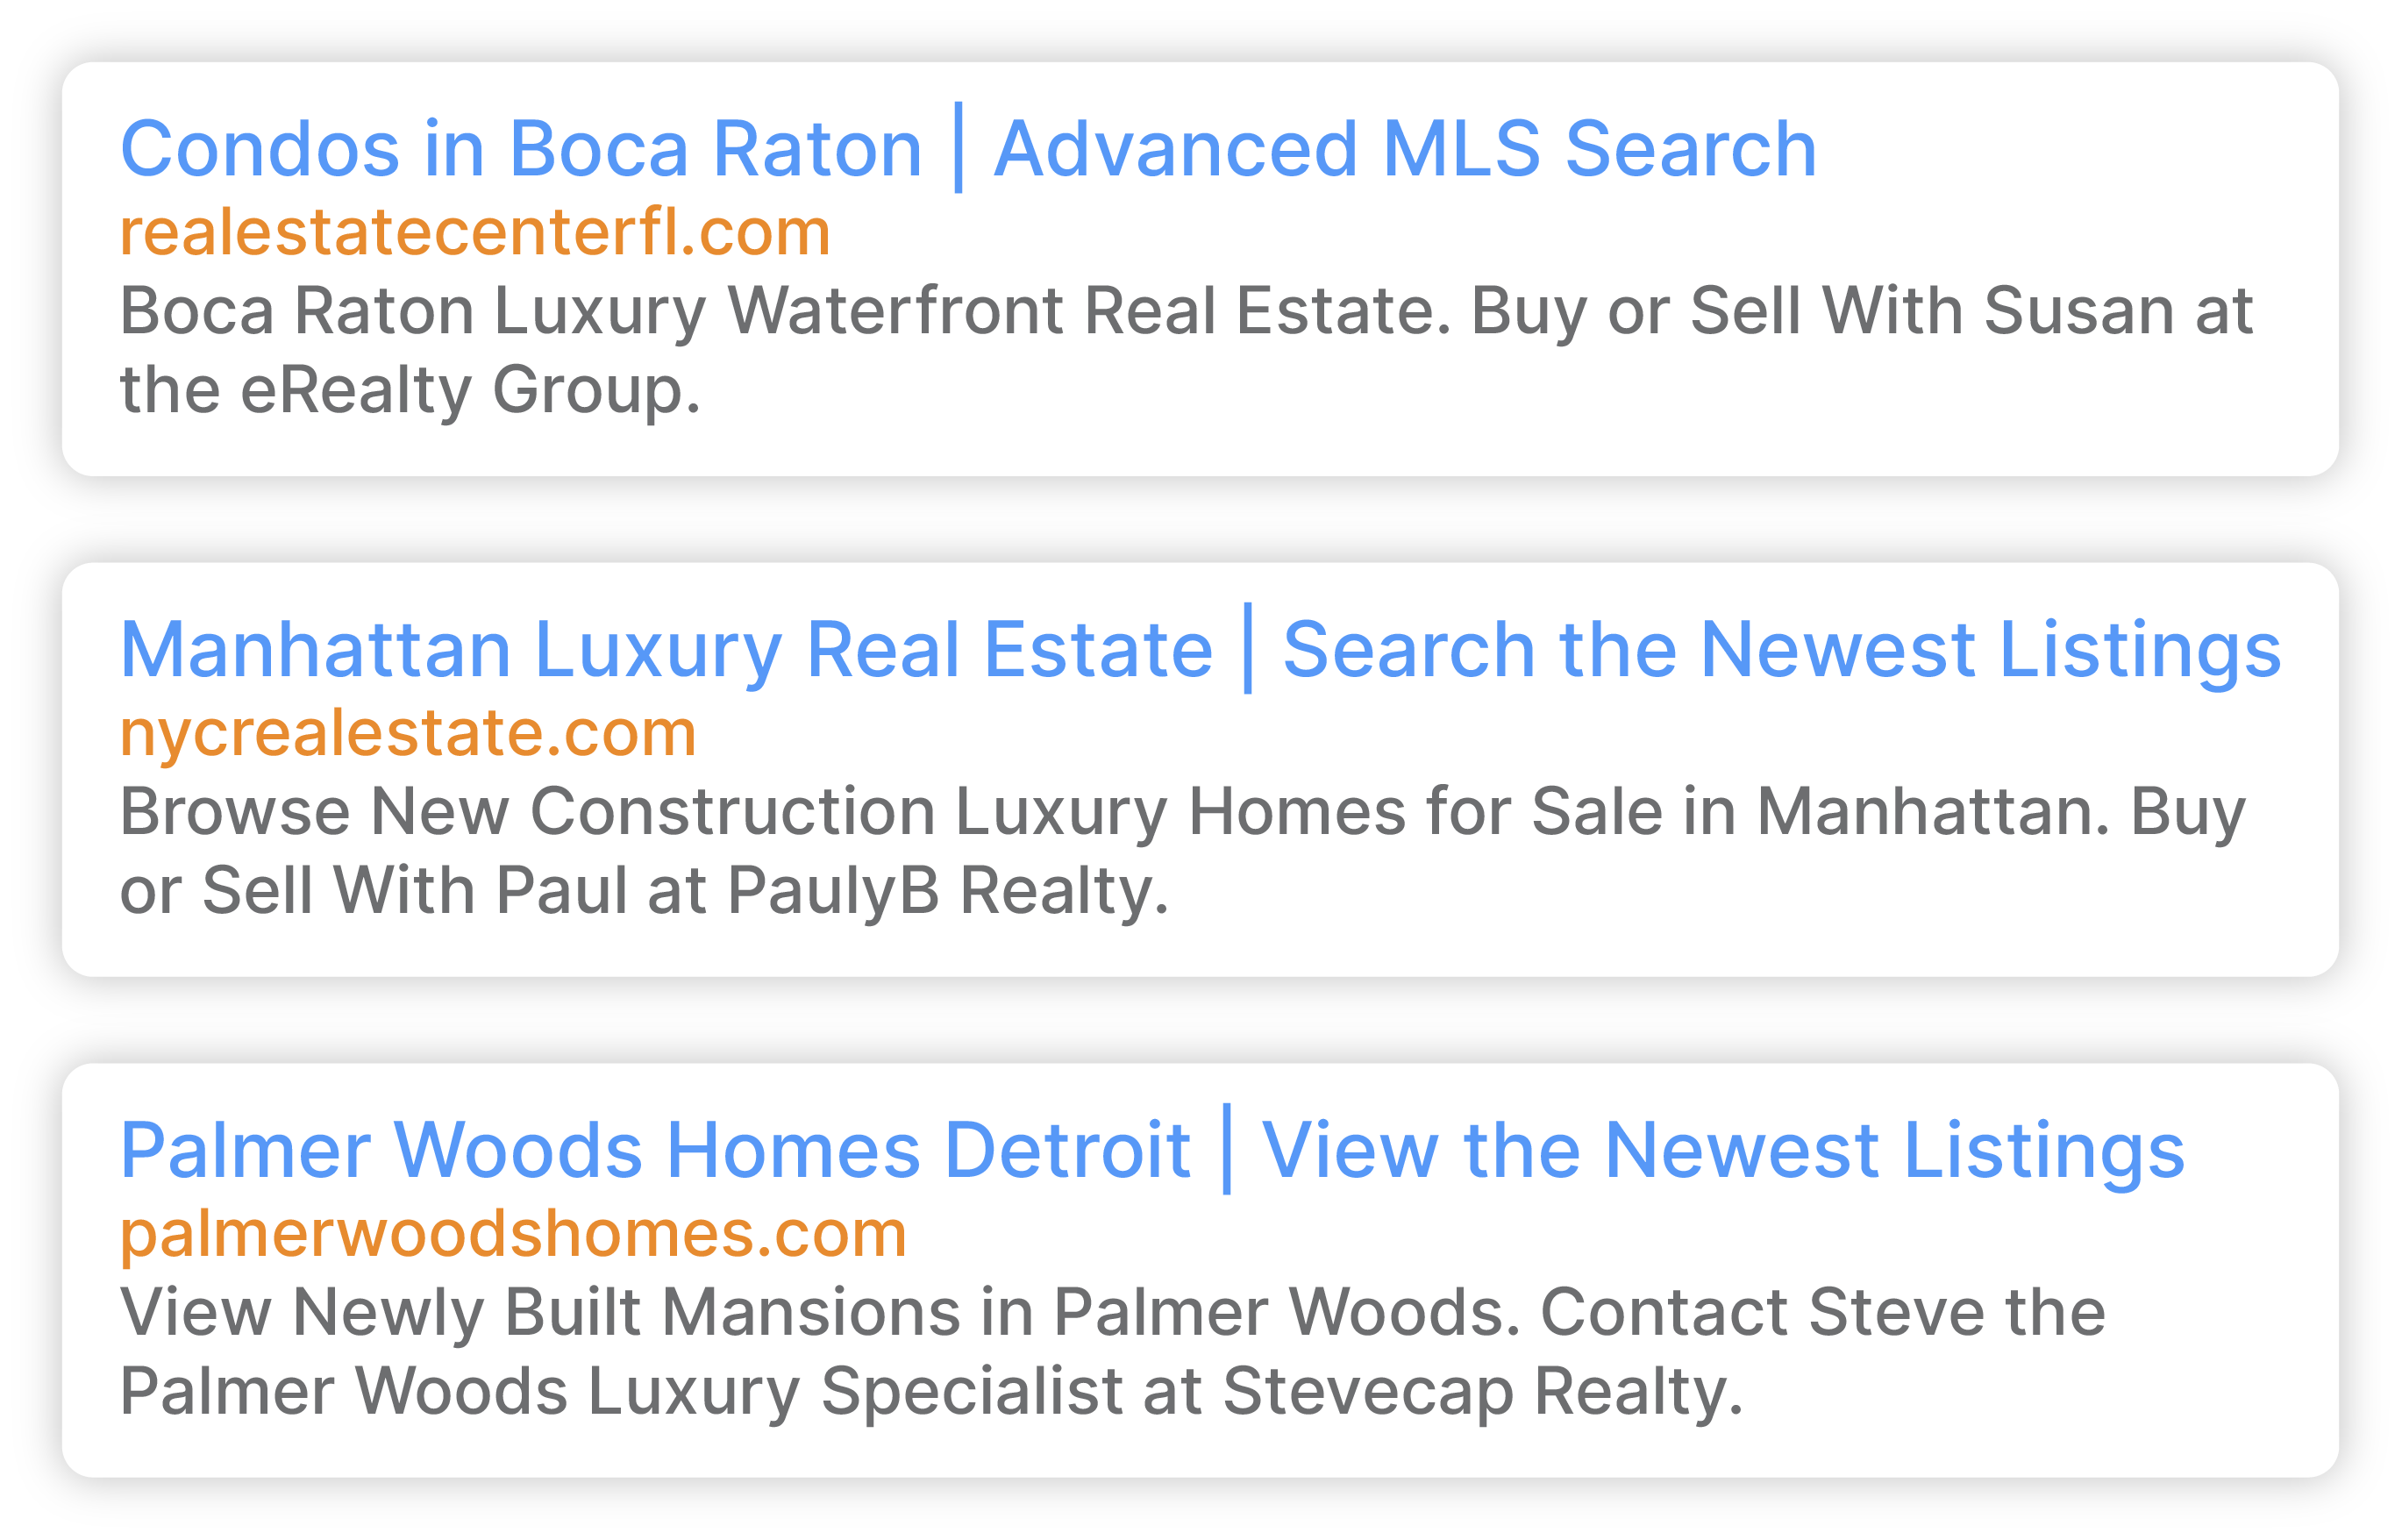 """Google search for """"Condos in Boca Raton 